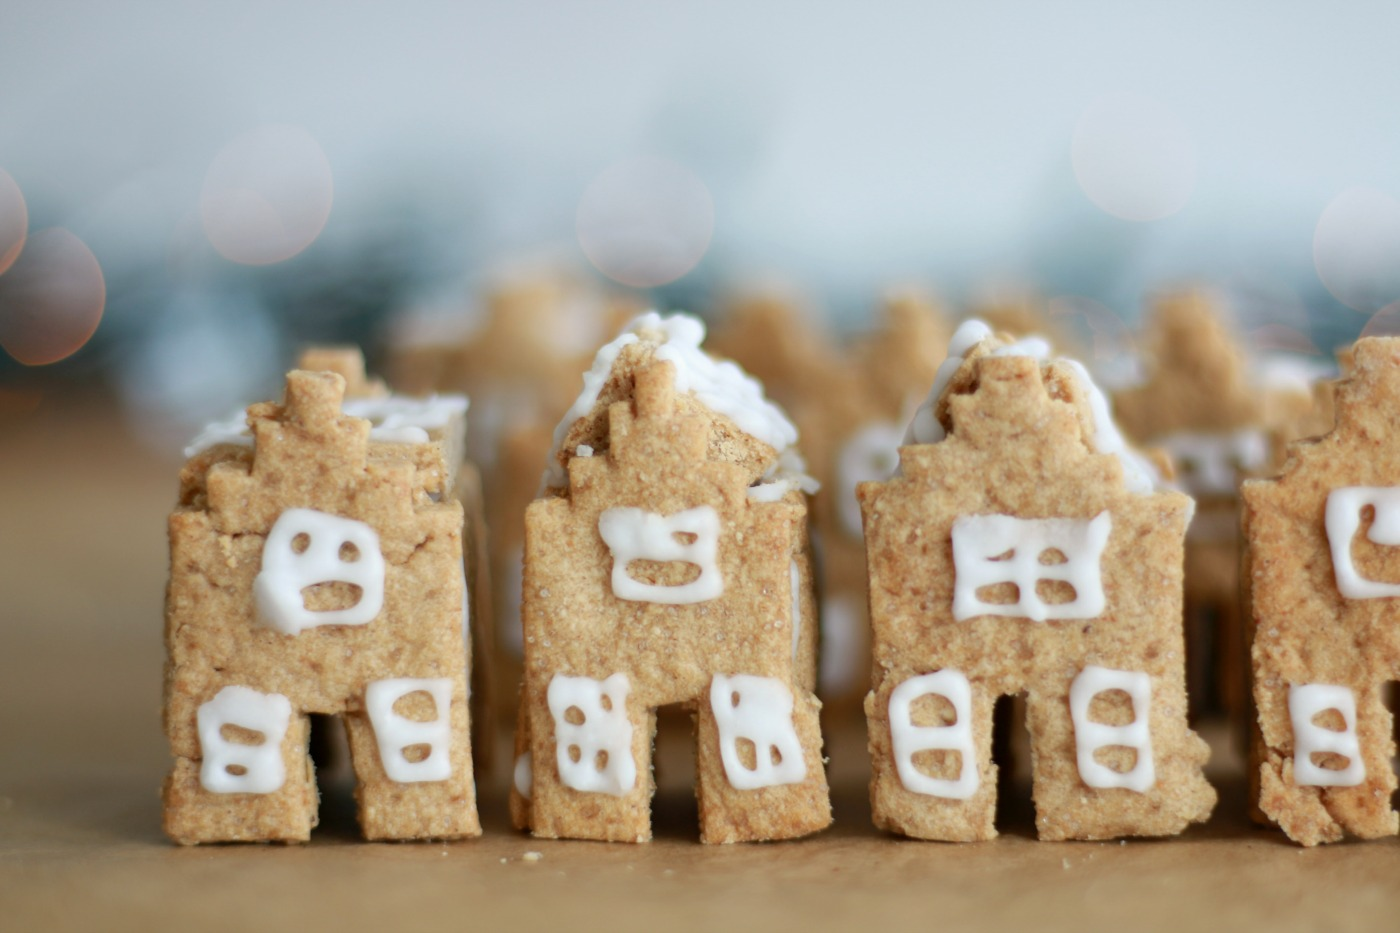 Gingerbread house - Delftse huisjes